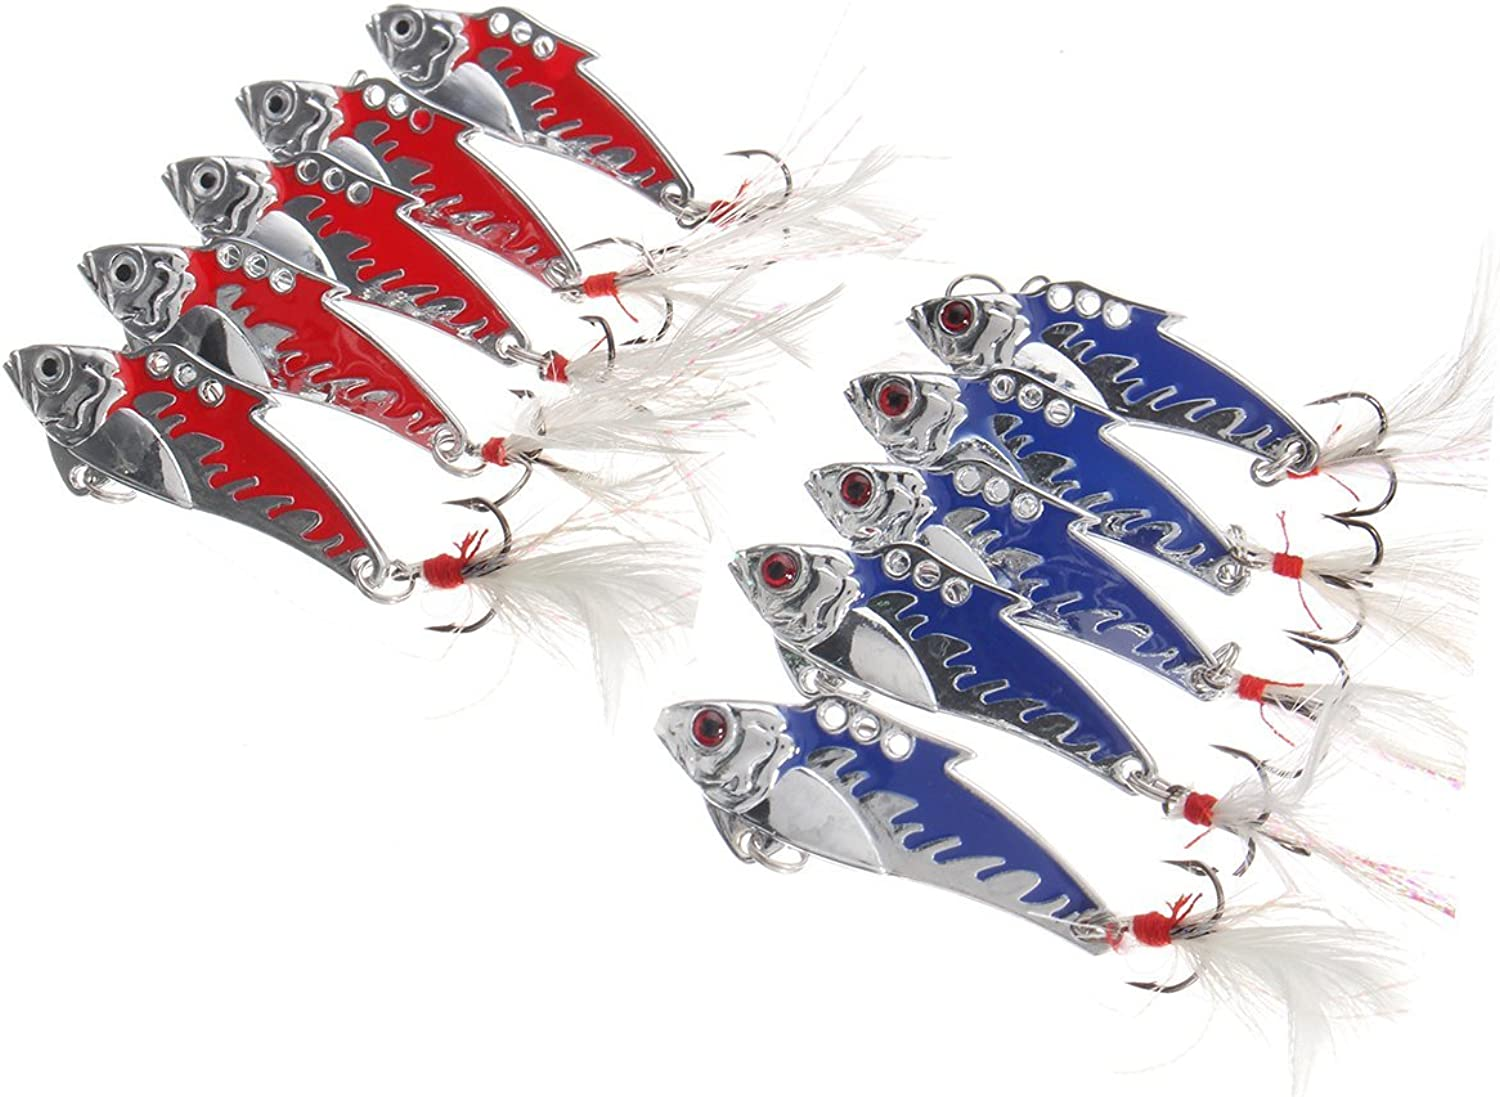 GEOPONICS 10pcs 5cm 8.2g Metal VIB Fishing Lure Crankbait HardTreble s